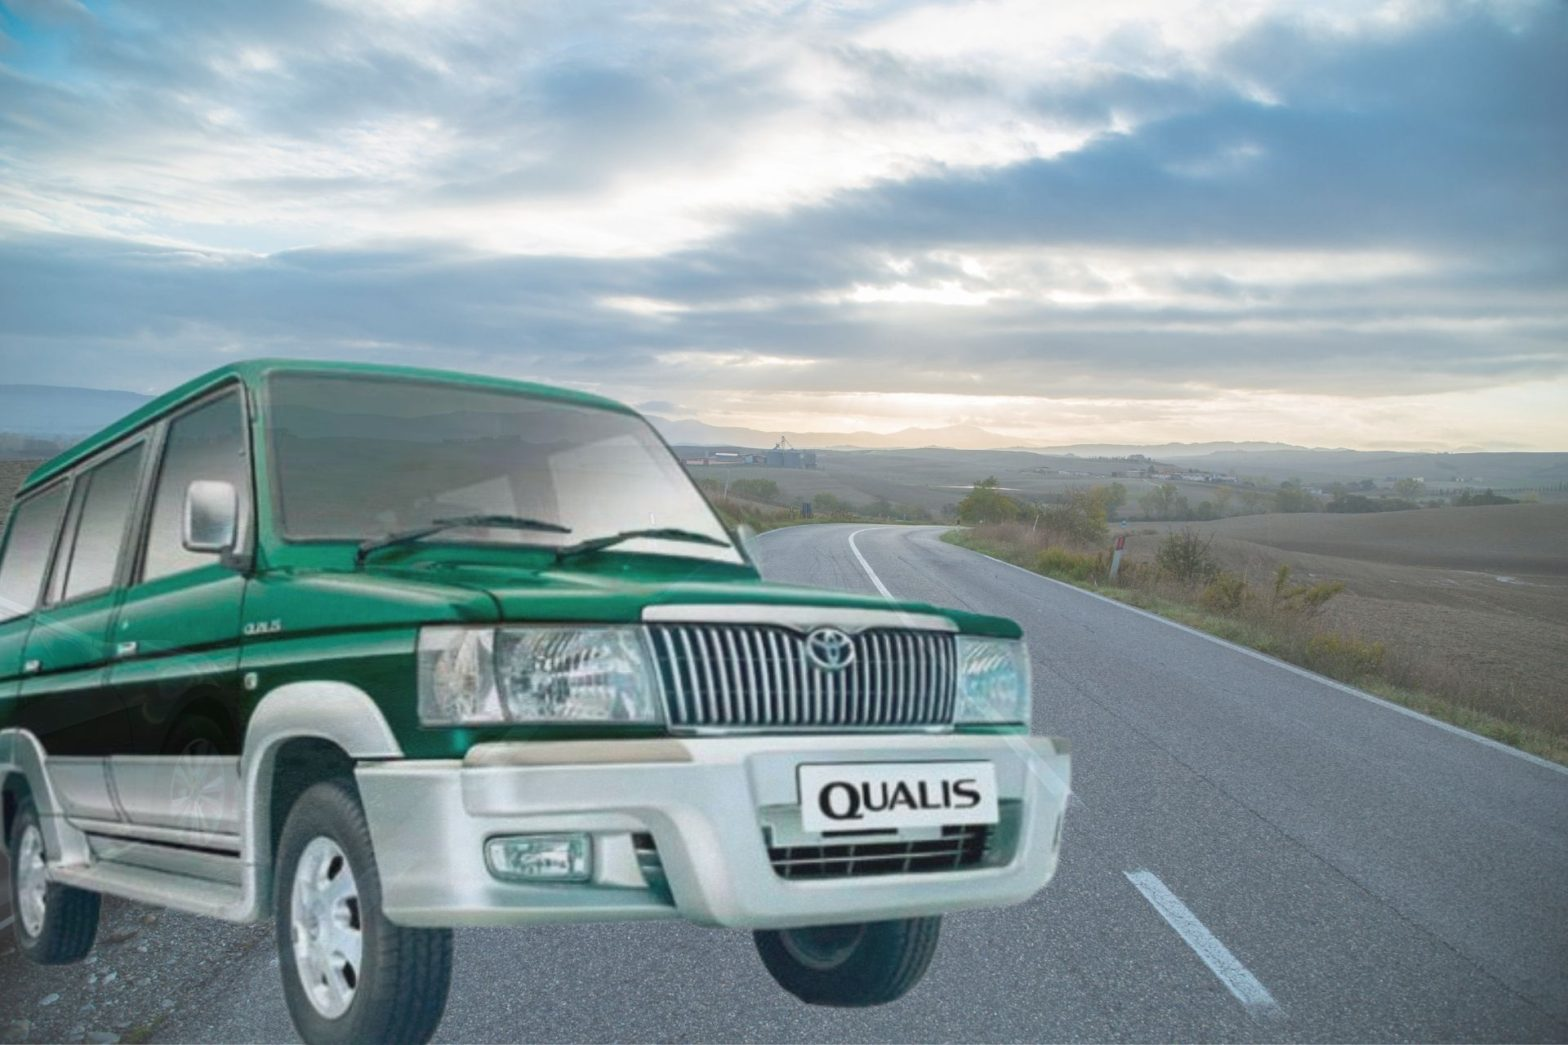 Toyota Qualis Car Rental in Hyderabad with Outstation & Local Tariff